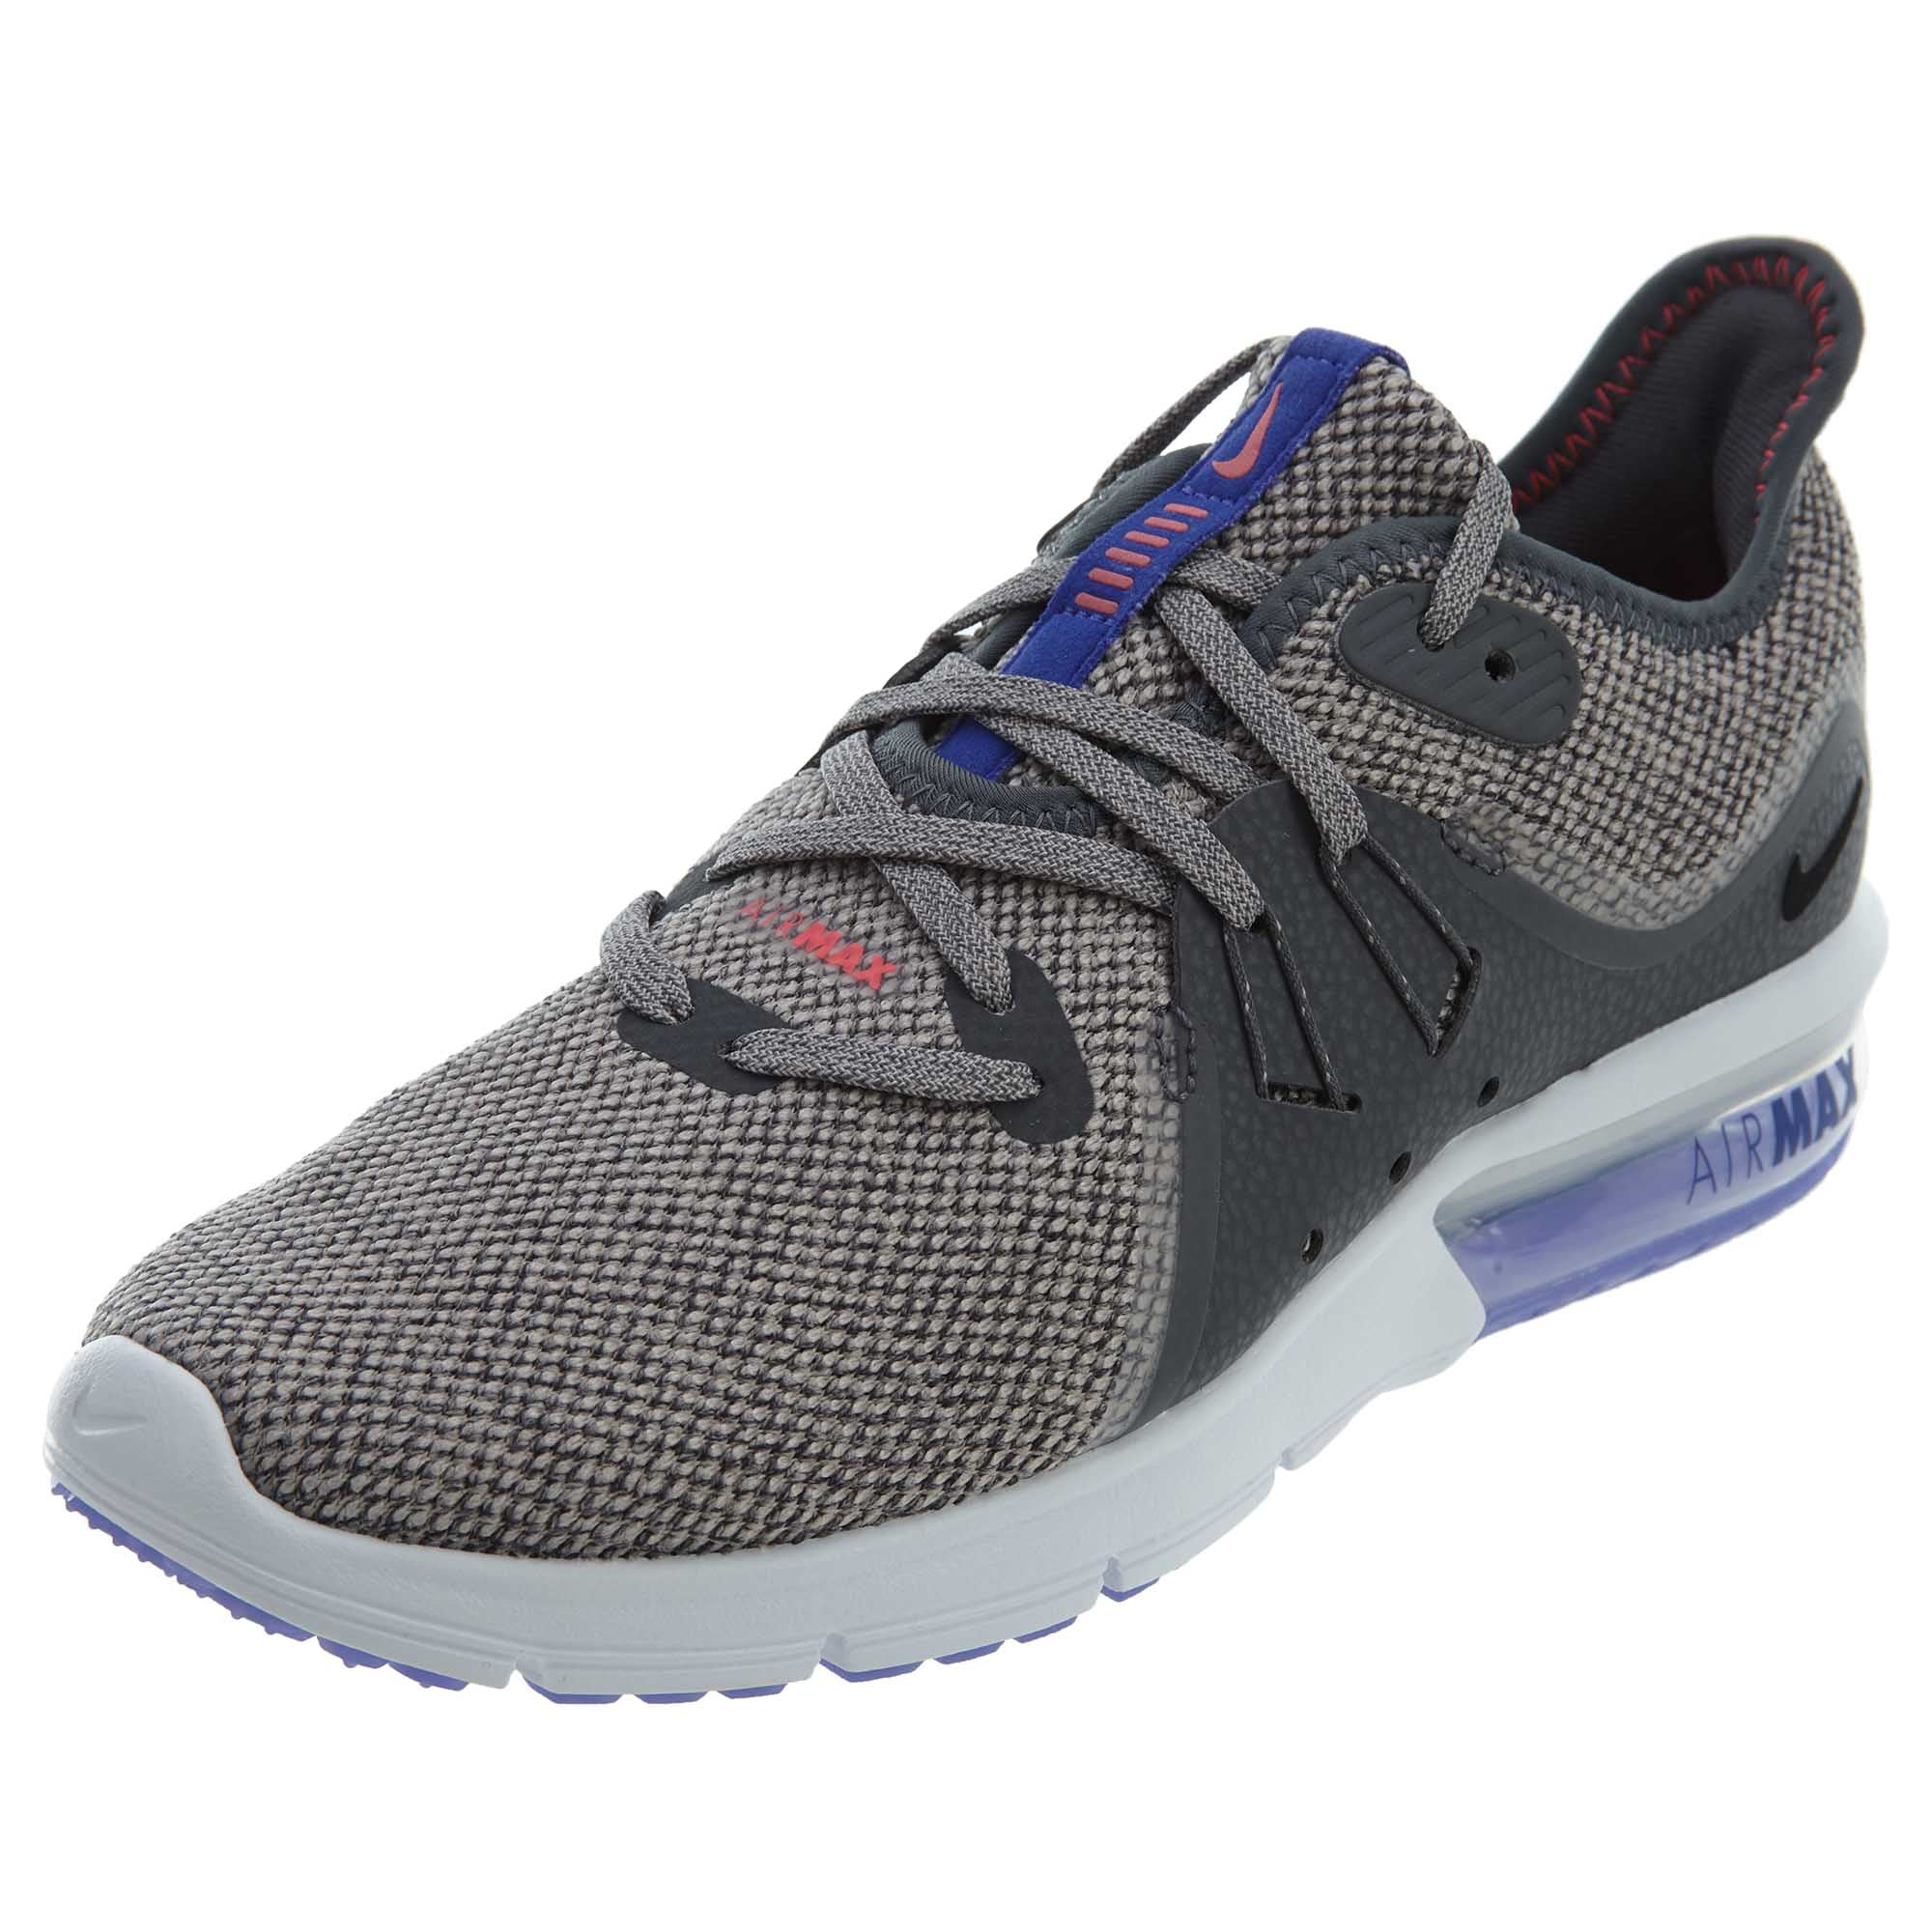 5c196d6bf3d72 Nike Air Max Sequent 3 Womens Style   908993